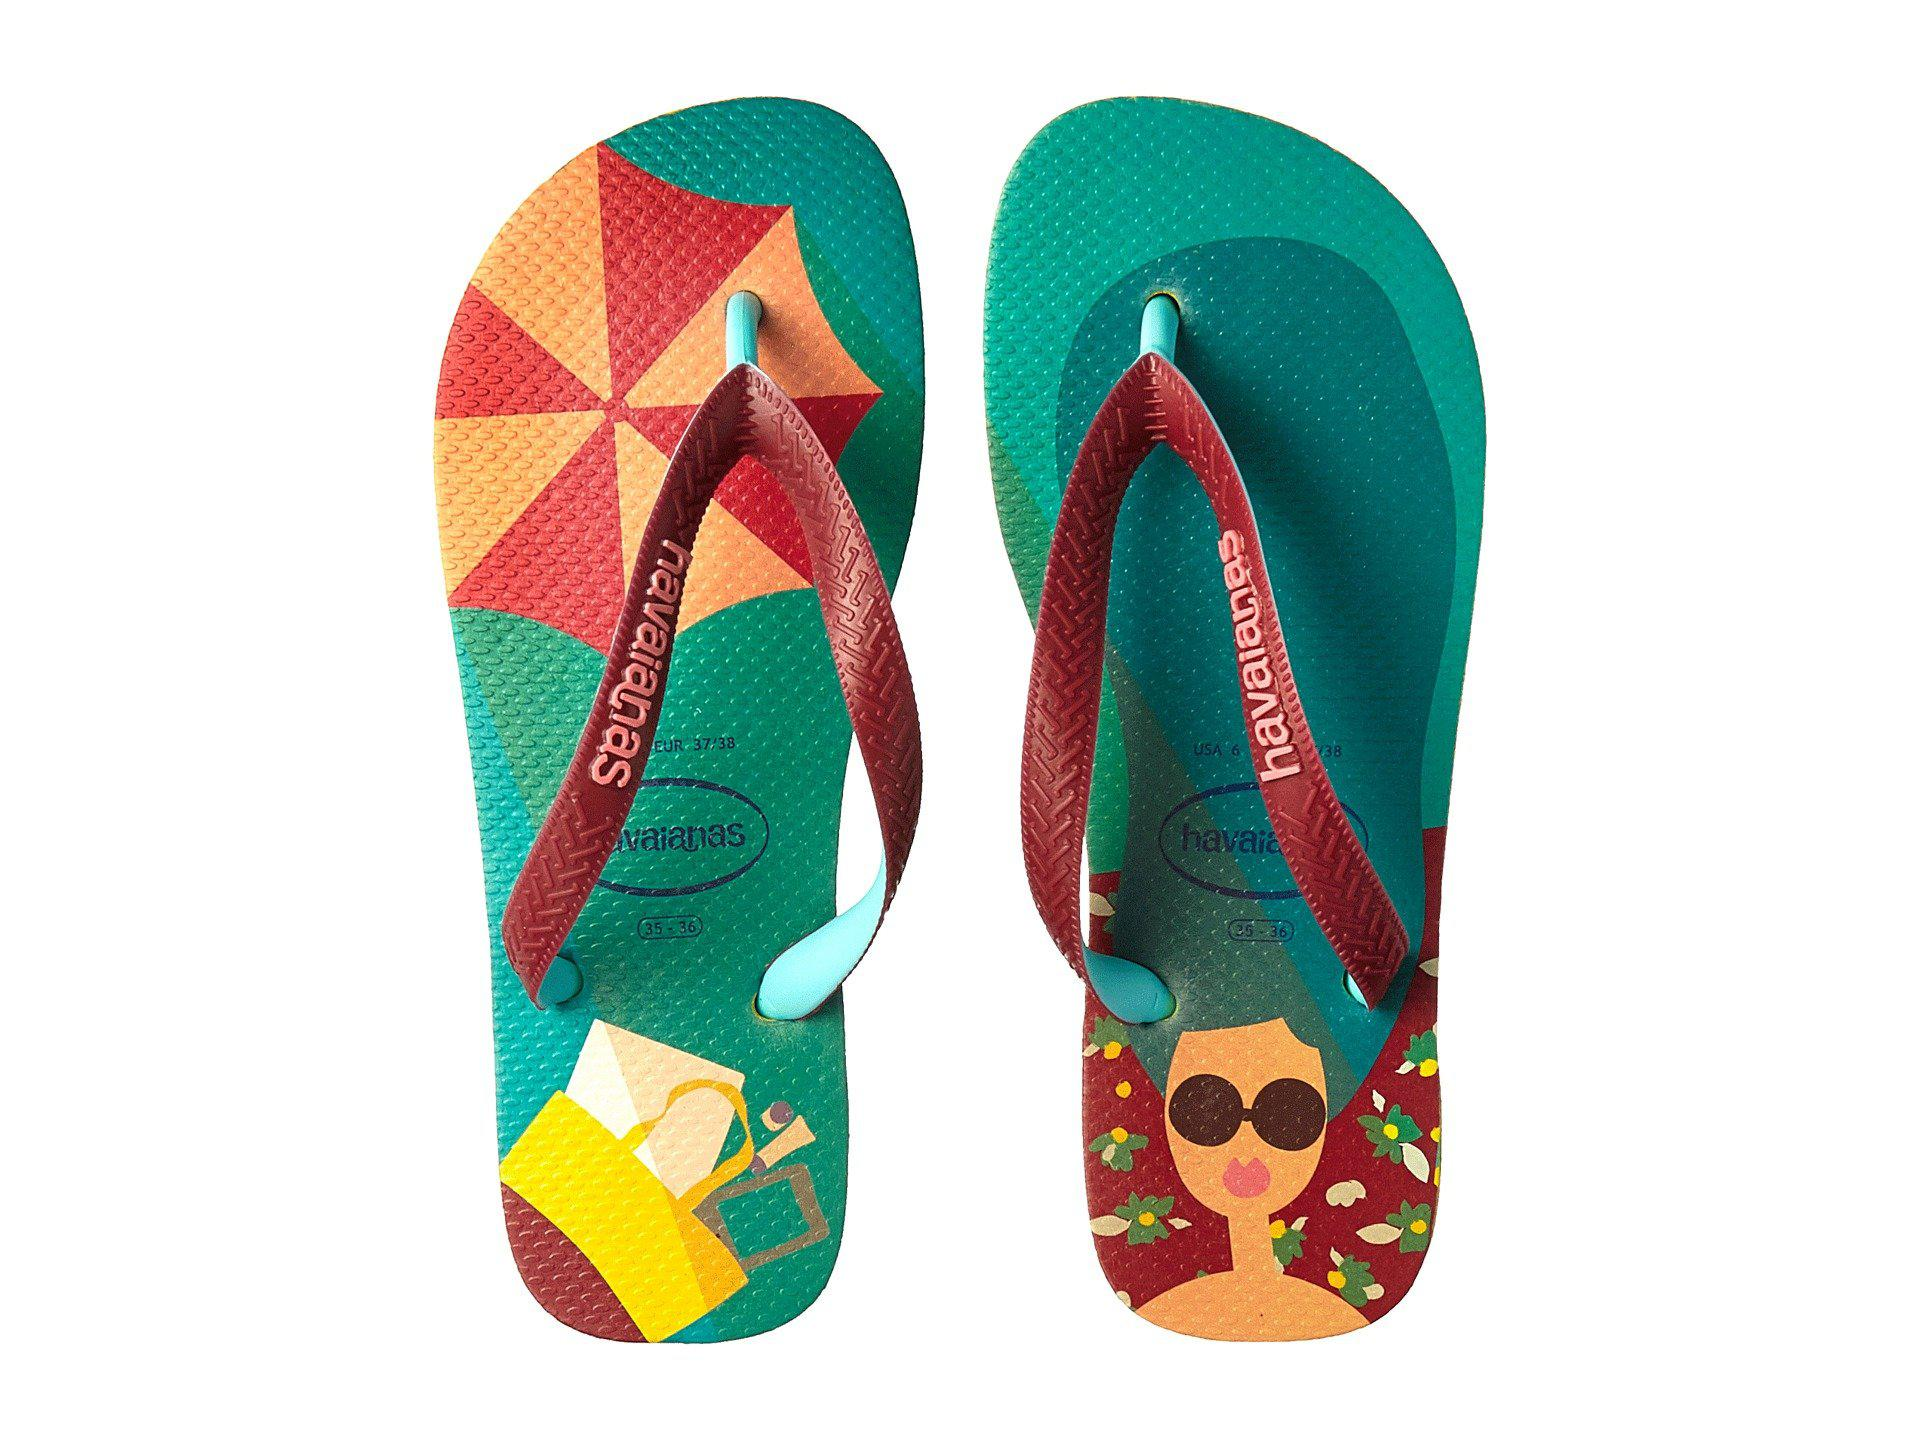 8f08cf1034cc Lyst - Havaianas Top Fashion Flip-flops (petroleum) Women s Sandals ...